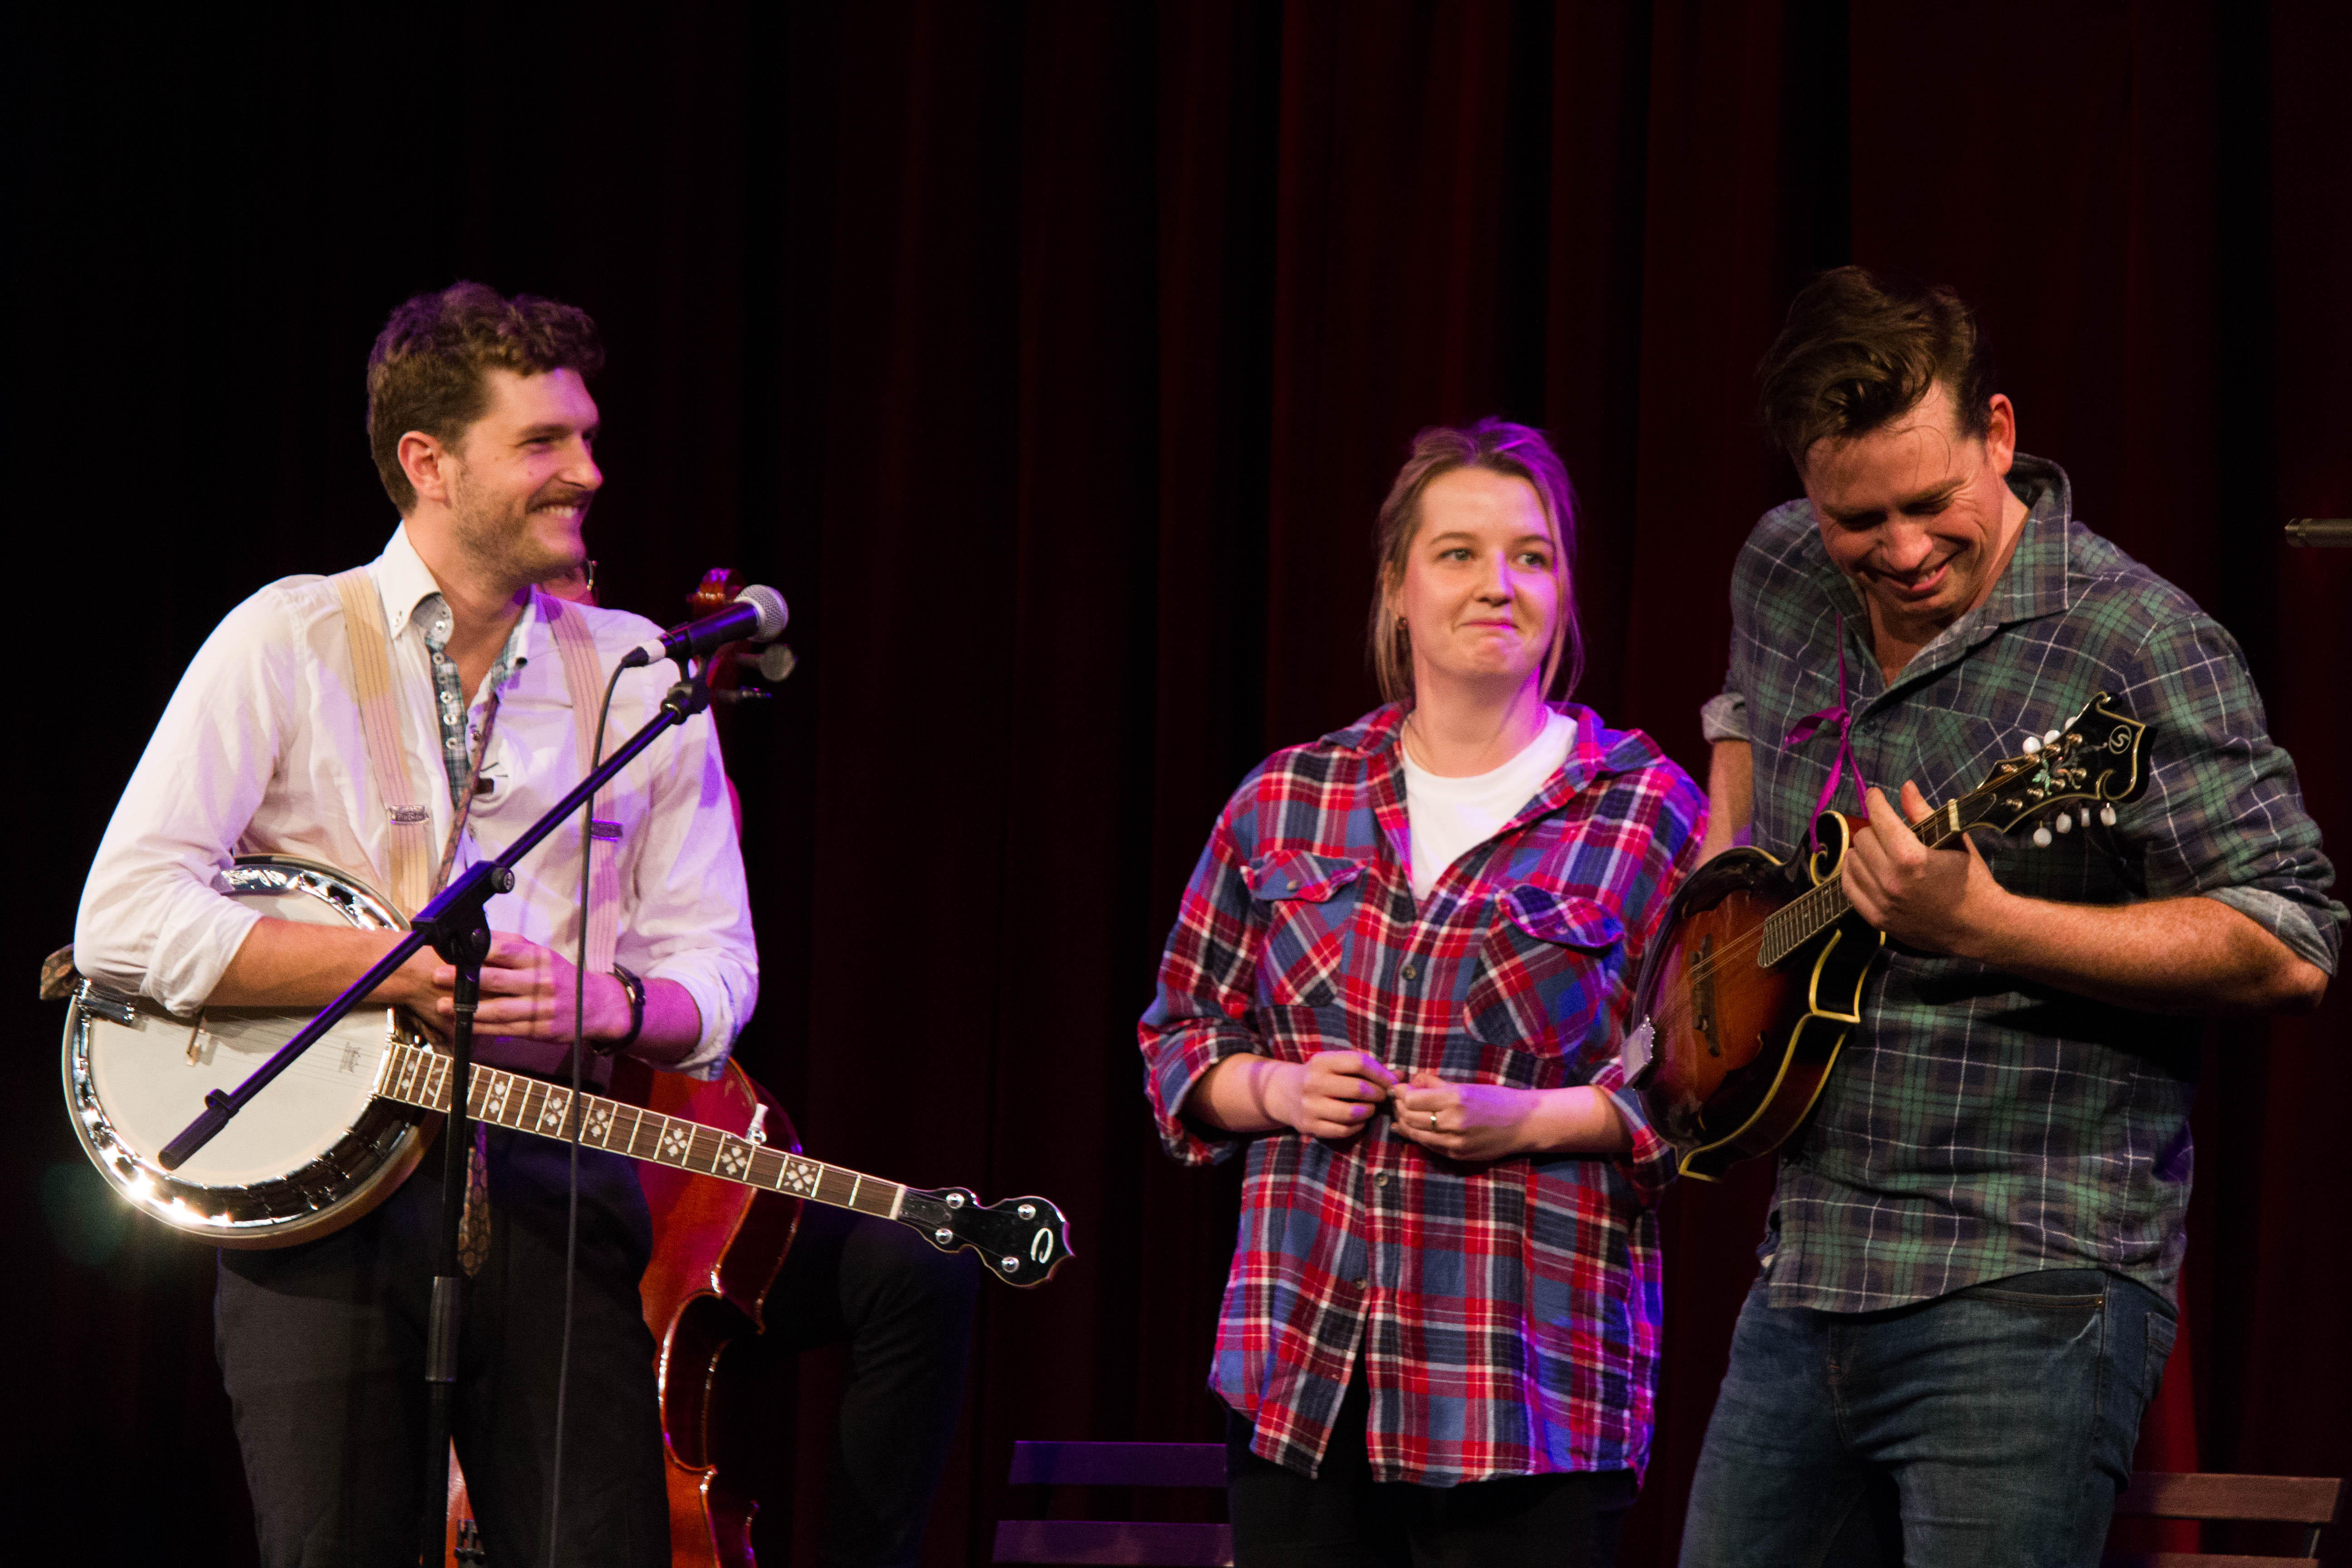 Carlo Ritchie (The Bear Pack) and recent ARIA award winners Bridie Connell and Wyatt Nixon-Lloyd perform in Plonk